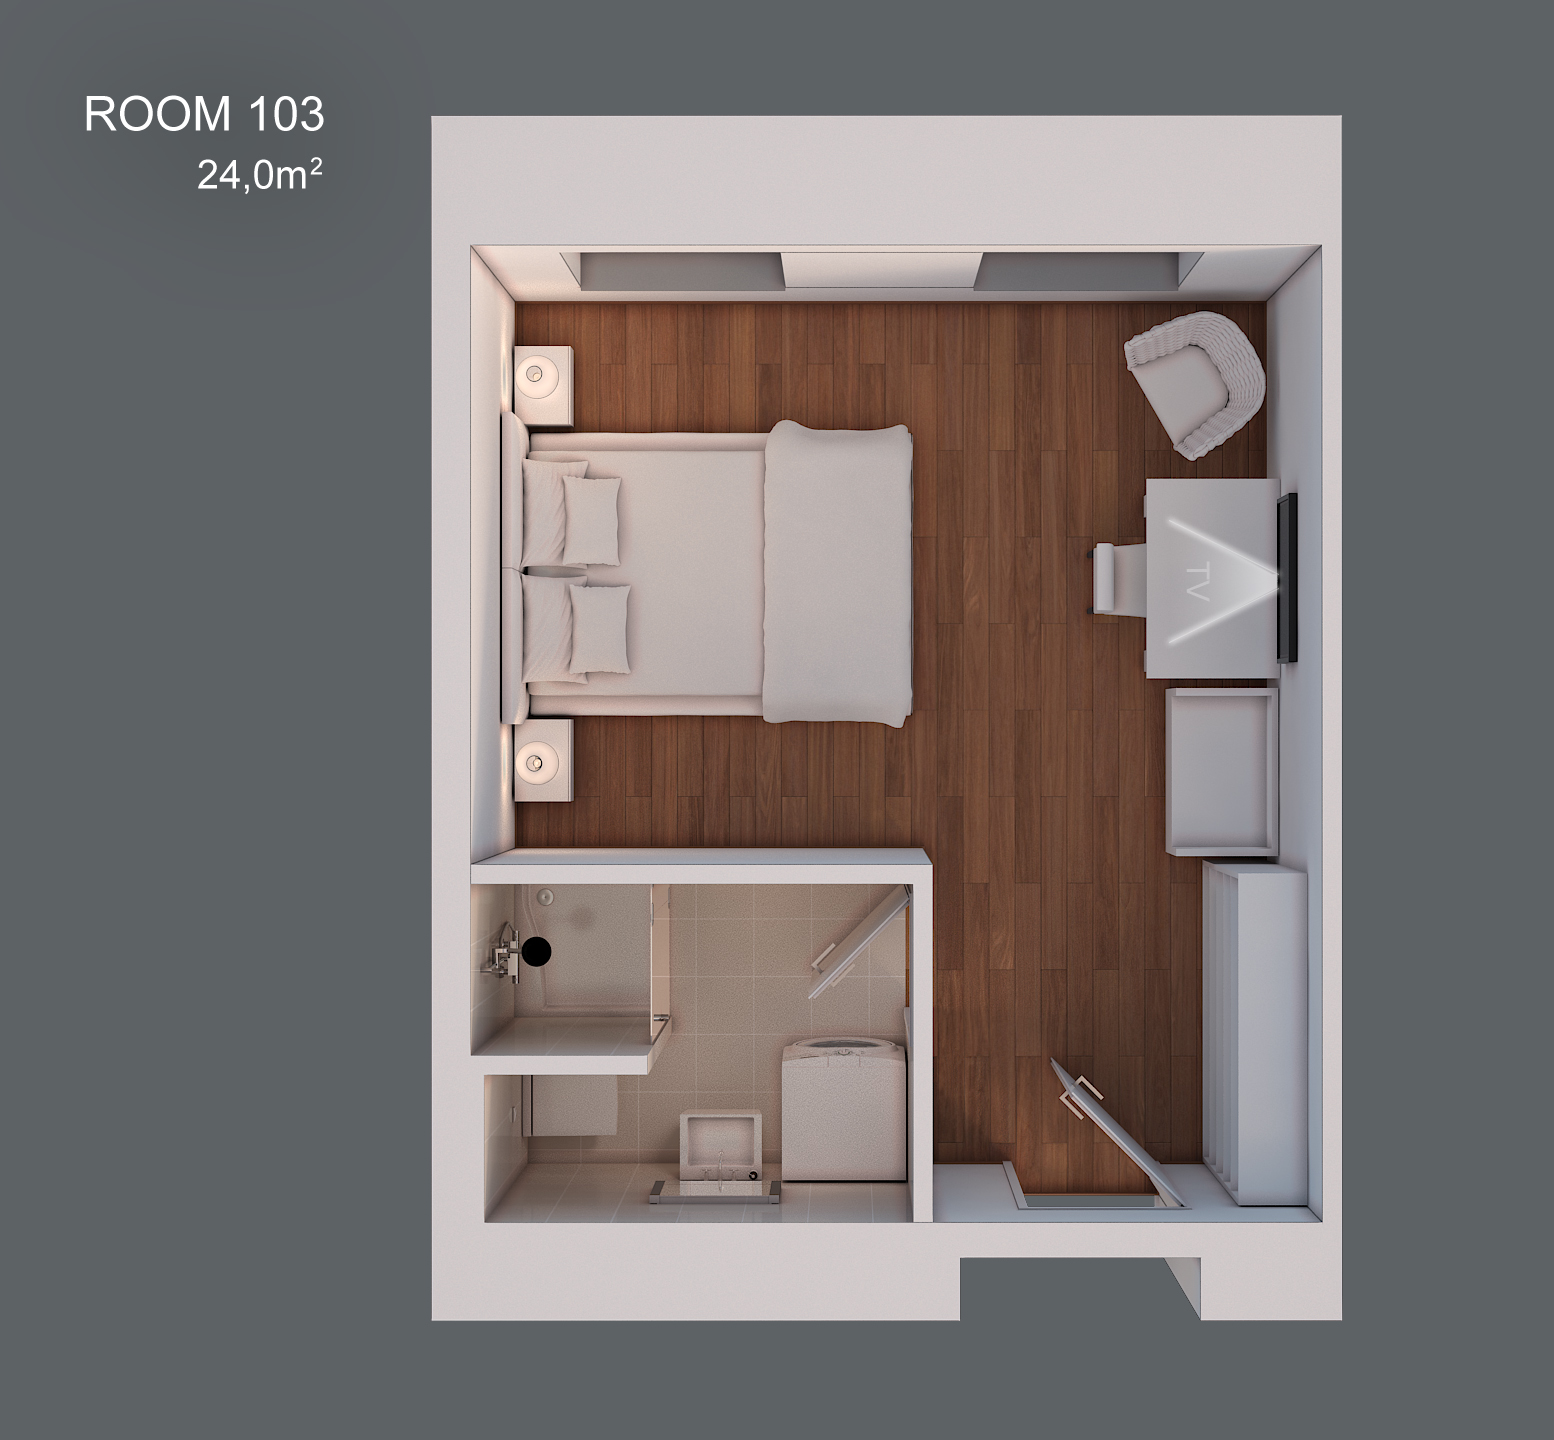 Room 103 layout